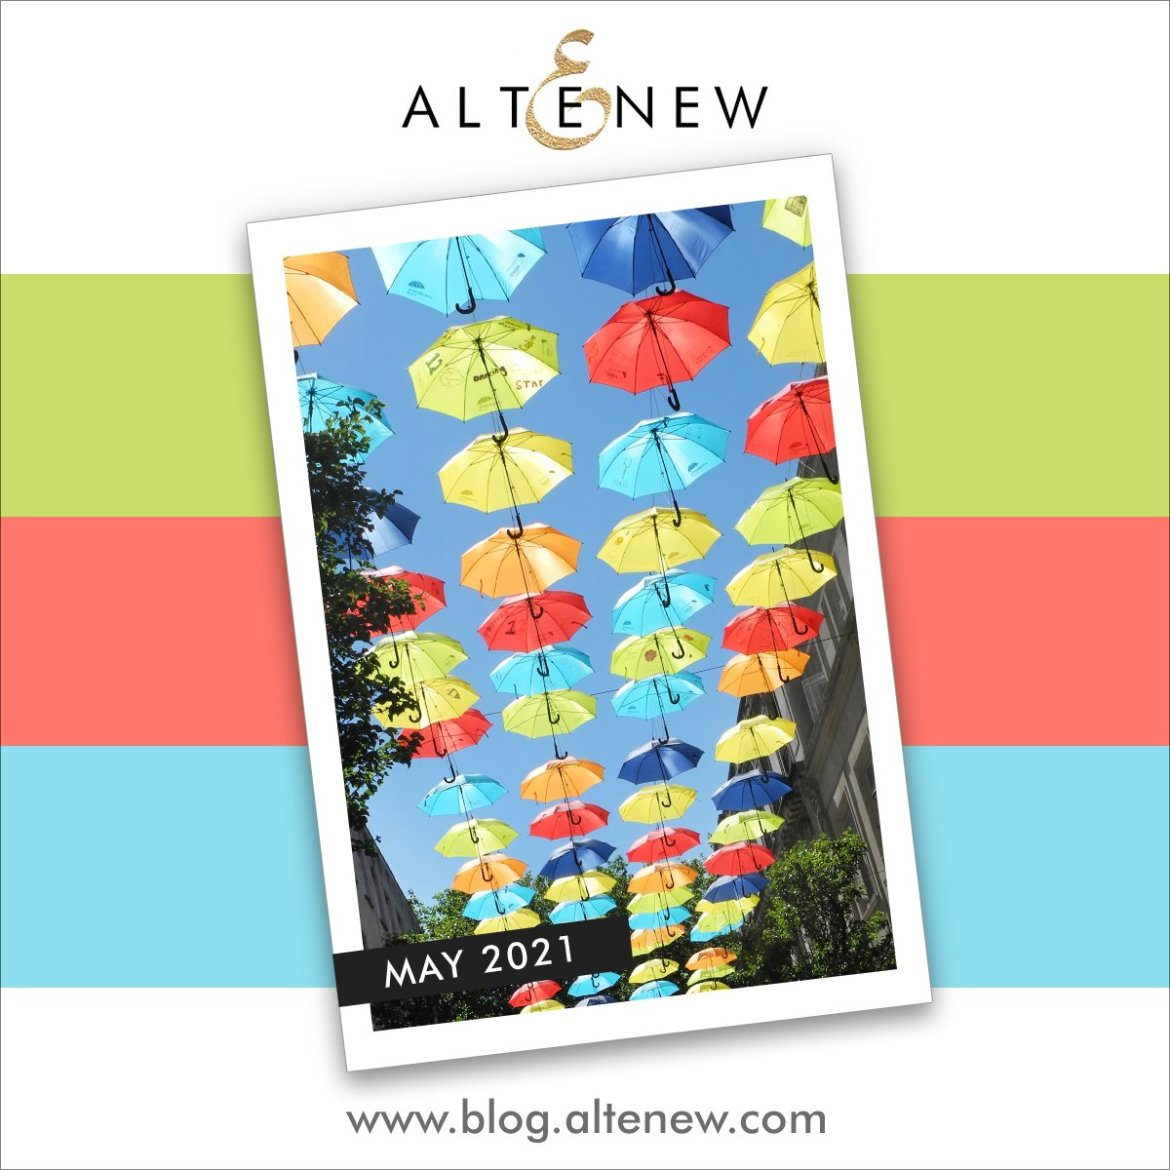 Altenew-May Inspiration Challenge 2021-05-02